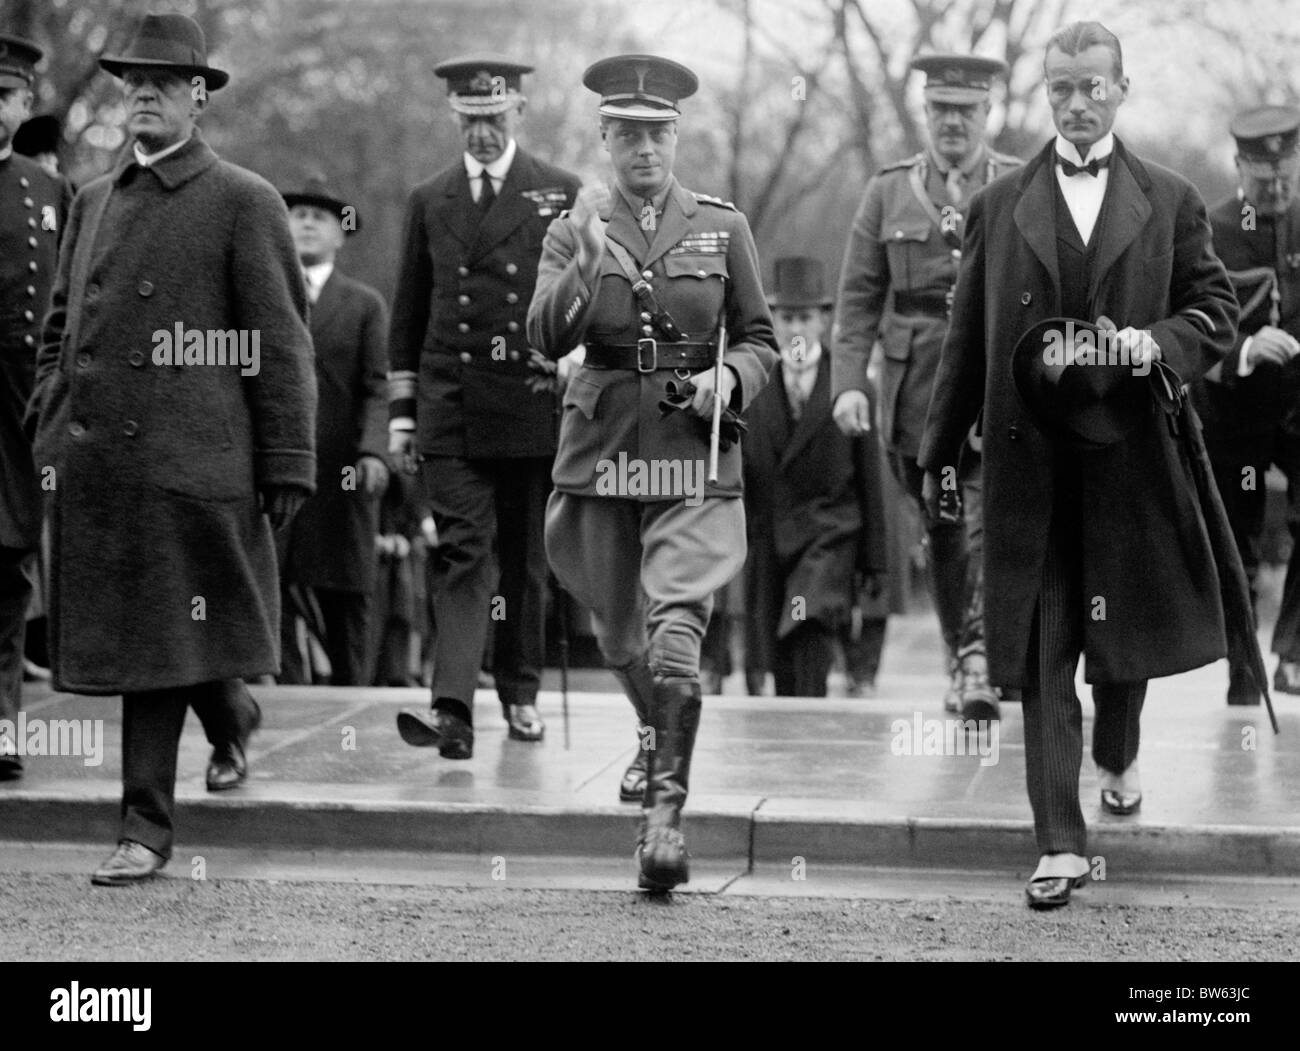 Edward Prince of Wales (later King Edward VIII) arriving for a visit at the American Red Cross in Washington DC - Stock Image